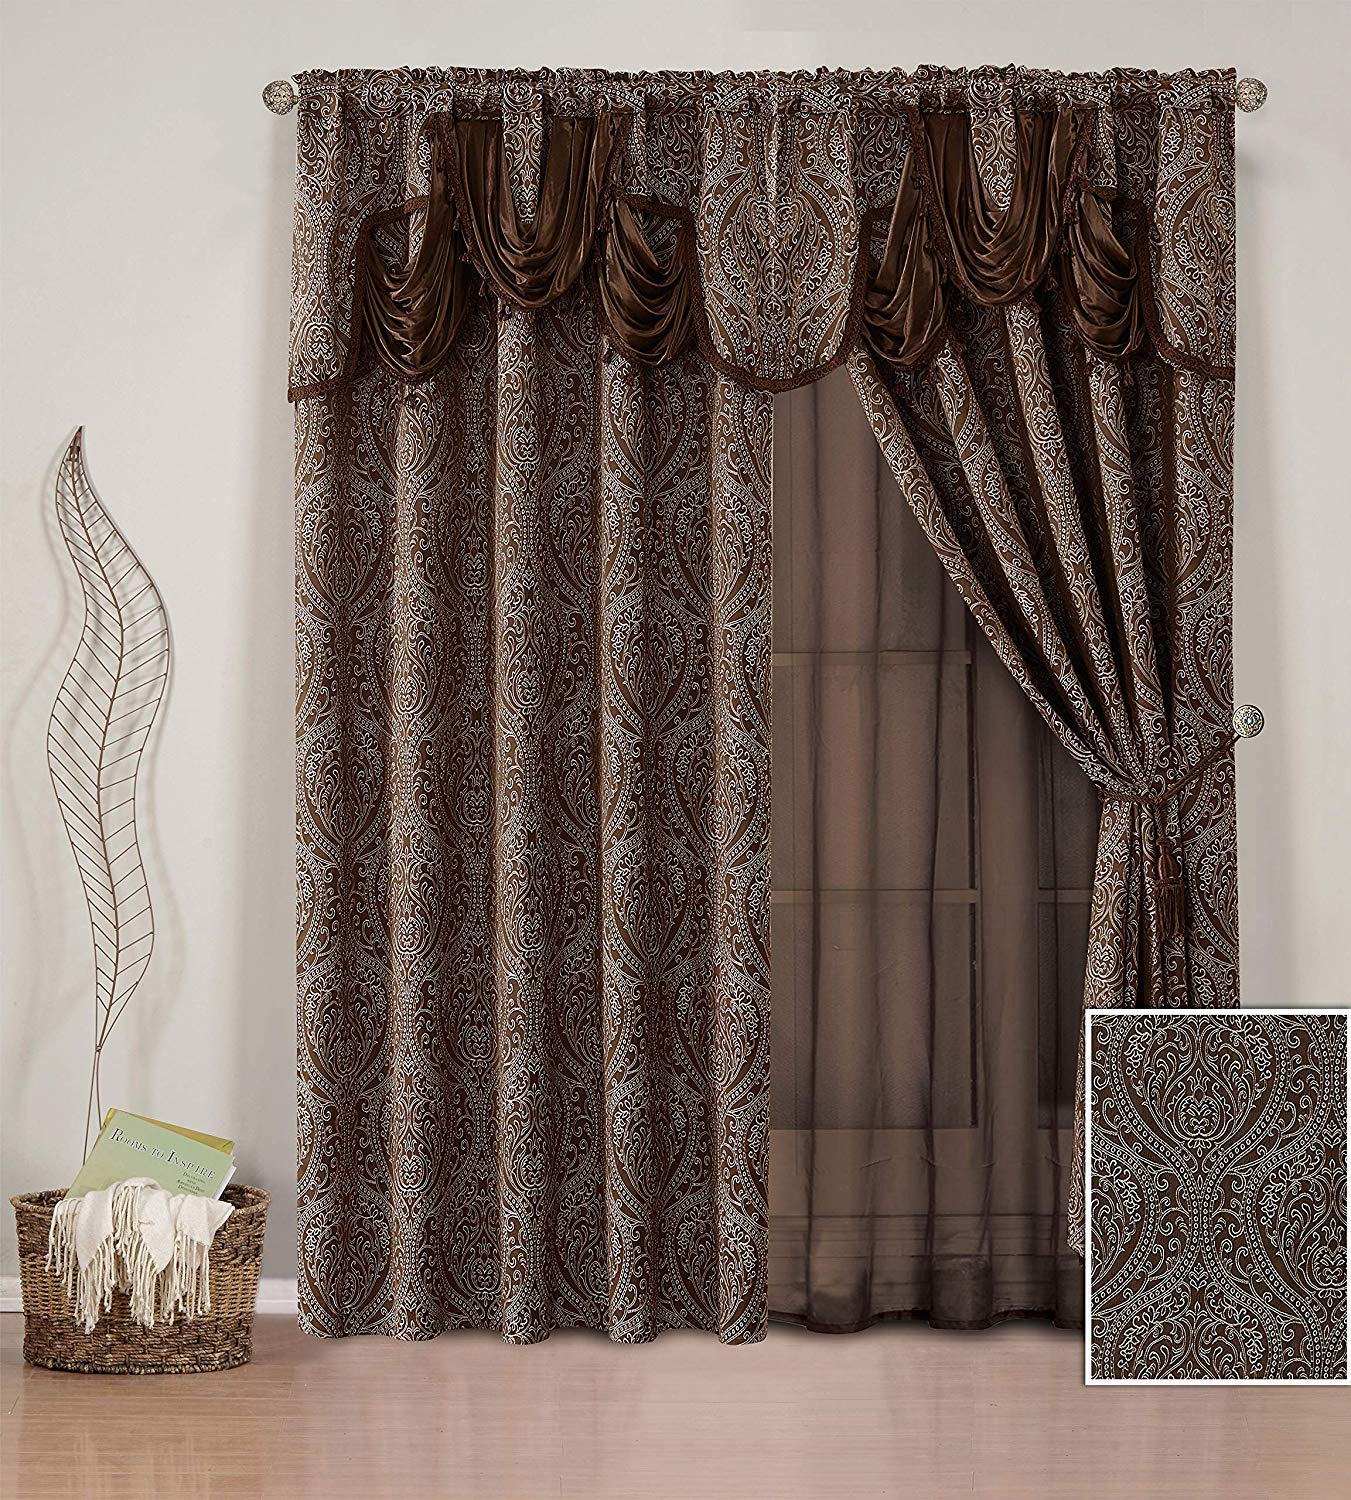 Fancy Linen 2 Panel Rod Pocket Curtain Drapes Embroidery Modern Jacquard Curtain Set with Attached Sheer Backing, Valance and Tassels for Living Room, Dining Room or Bedroom New # Nina (Coffee/Brown) by Fancy Linen LLC